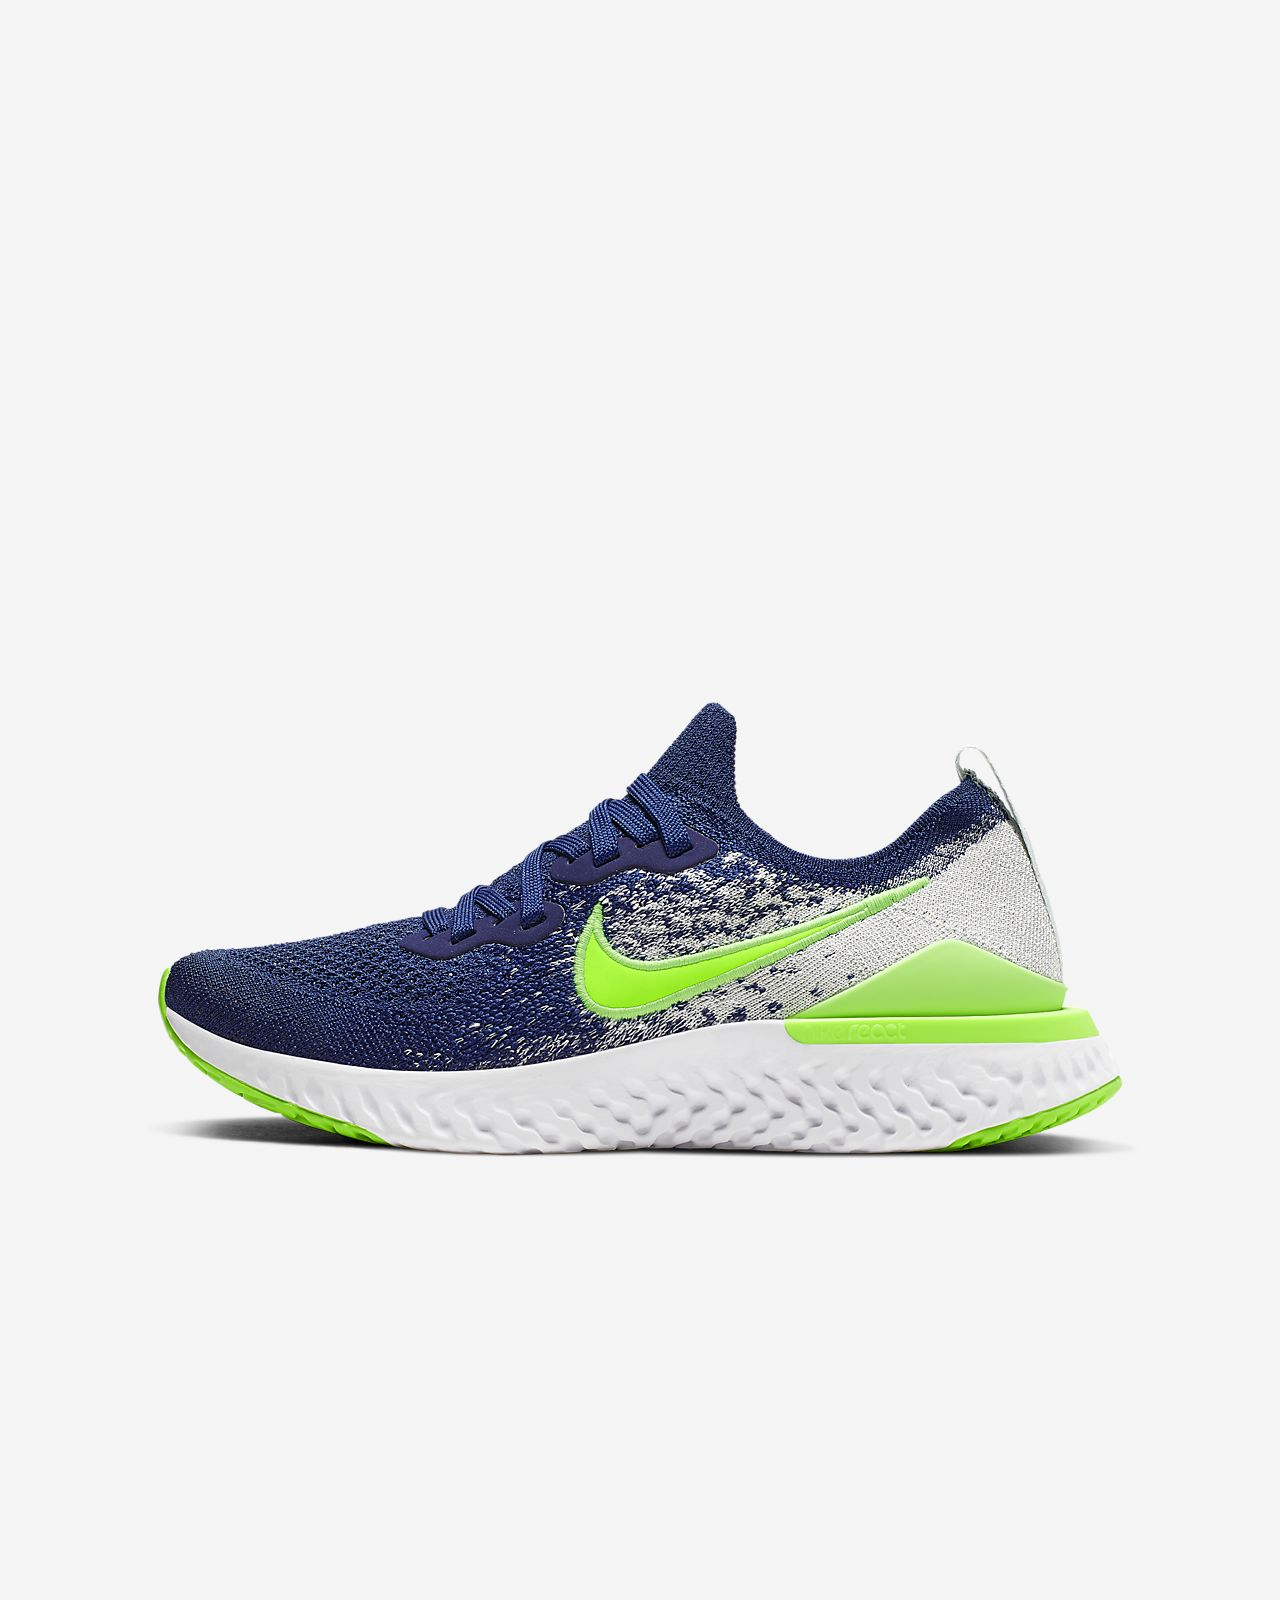 info for aff06 c99b2 Nike Epic React Flyknit 2 Big Kids' Running Shoe